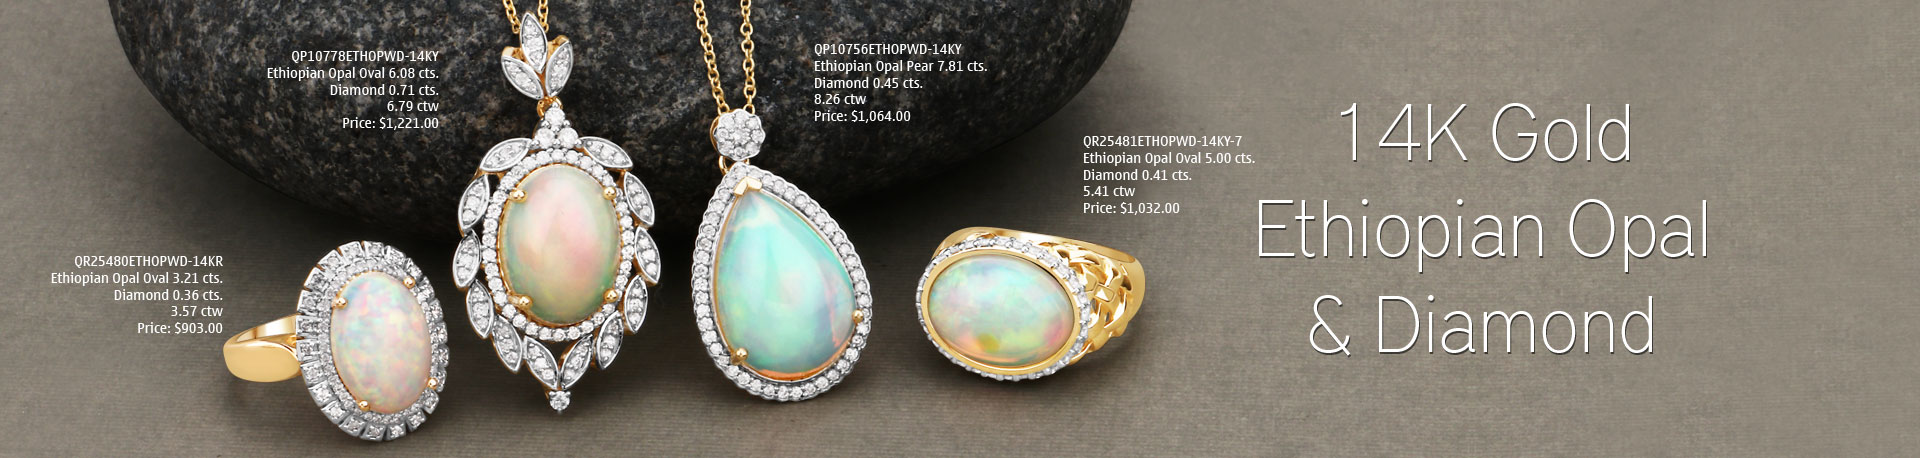 Ethiopian Opal & Diamond Gold Jewelry